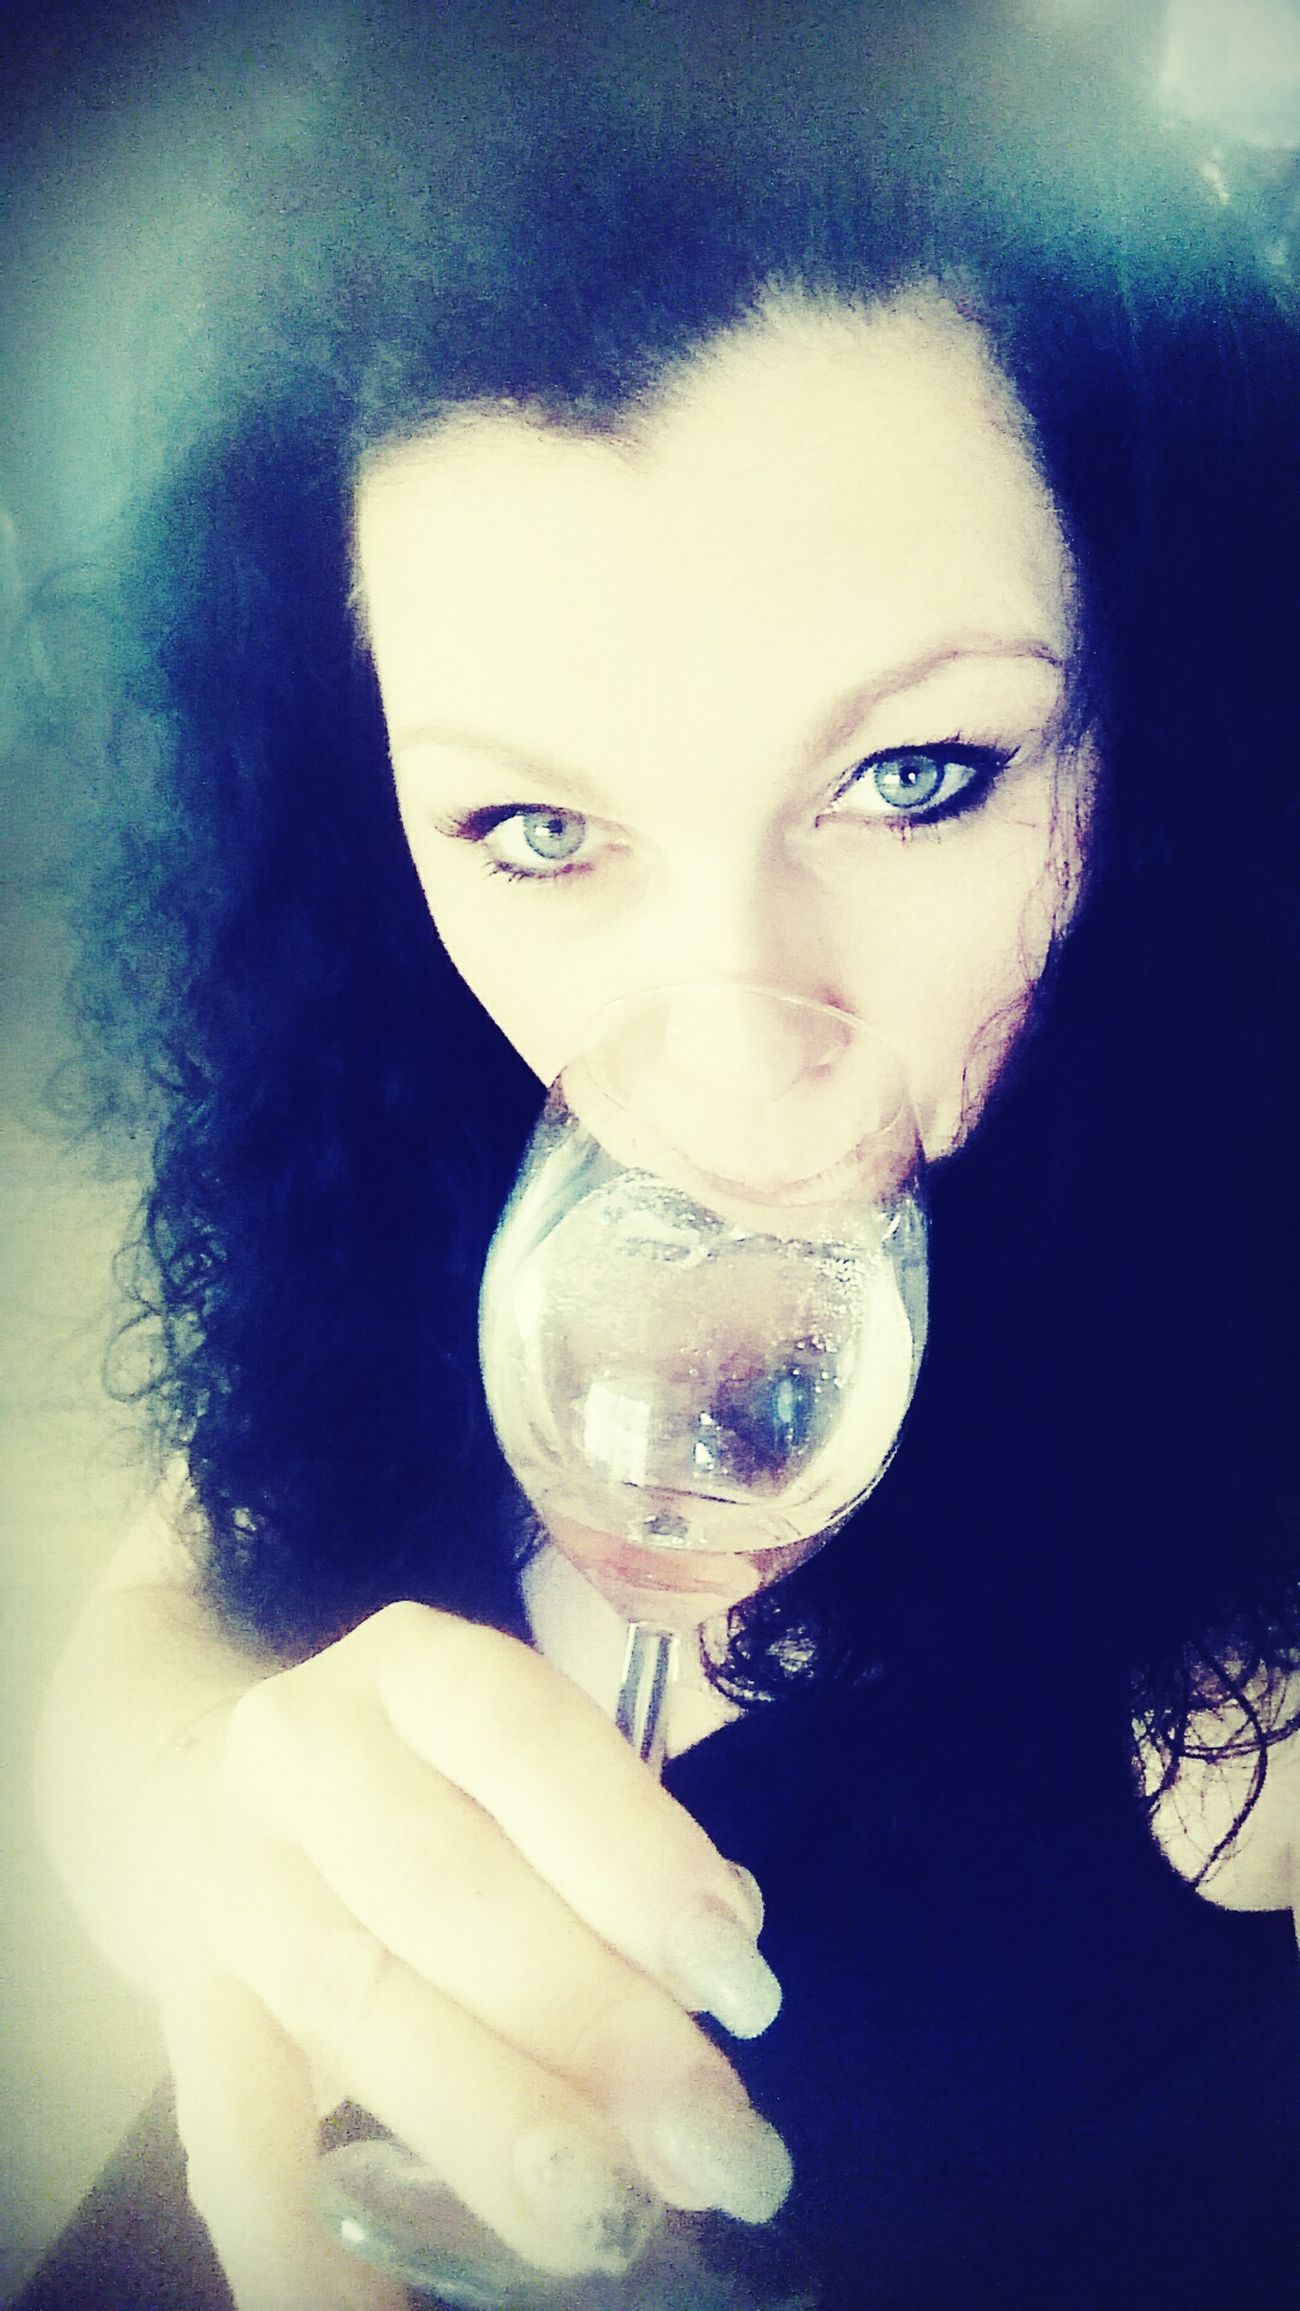 Cheers 🍸 Drinking Woman Woman Look Me In The Eyes Cherrs Happy